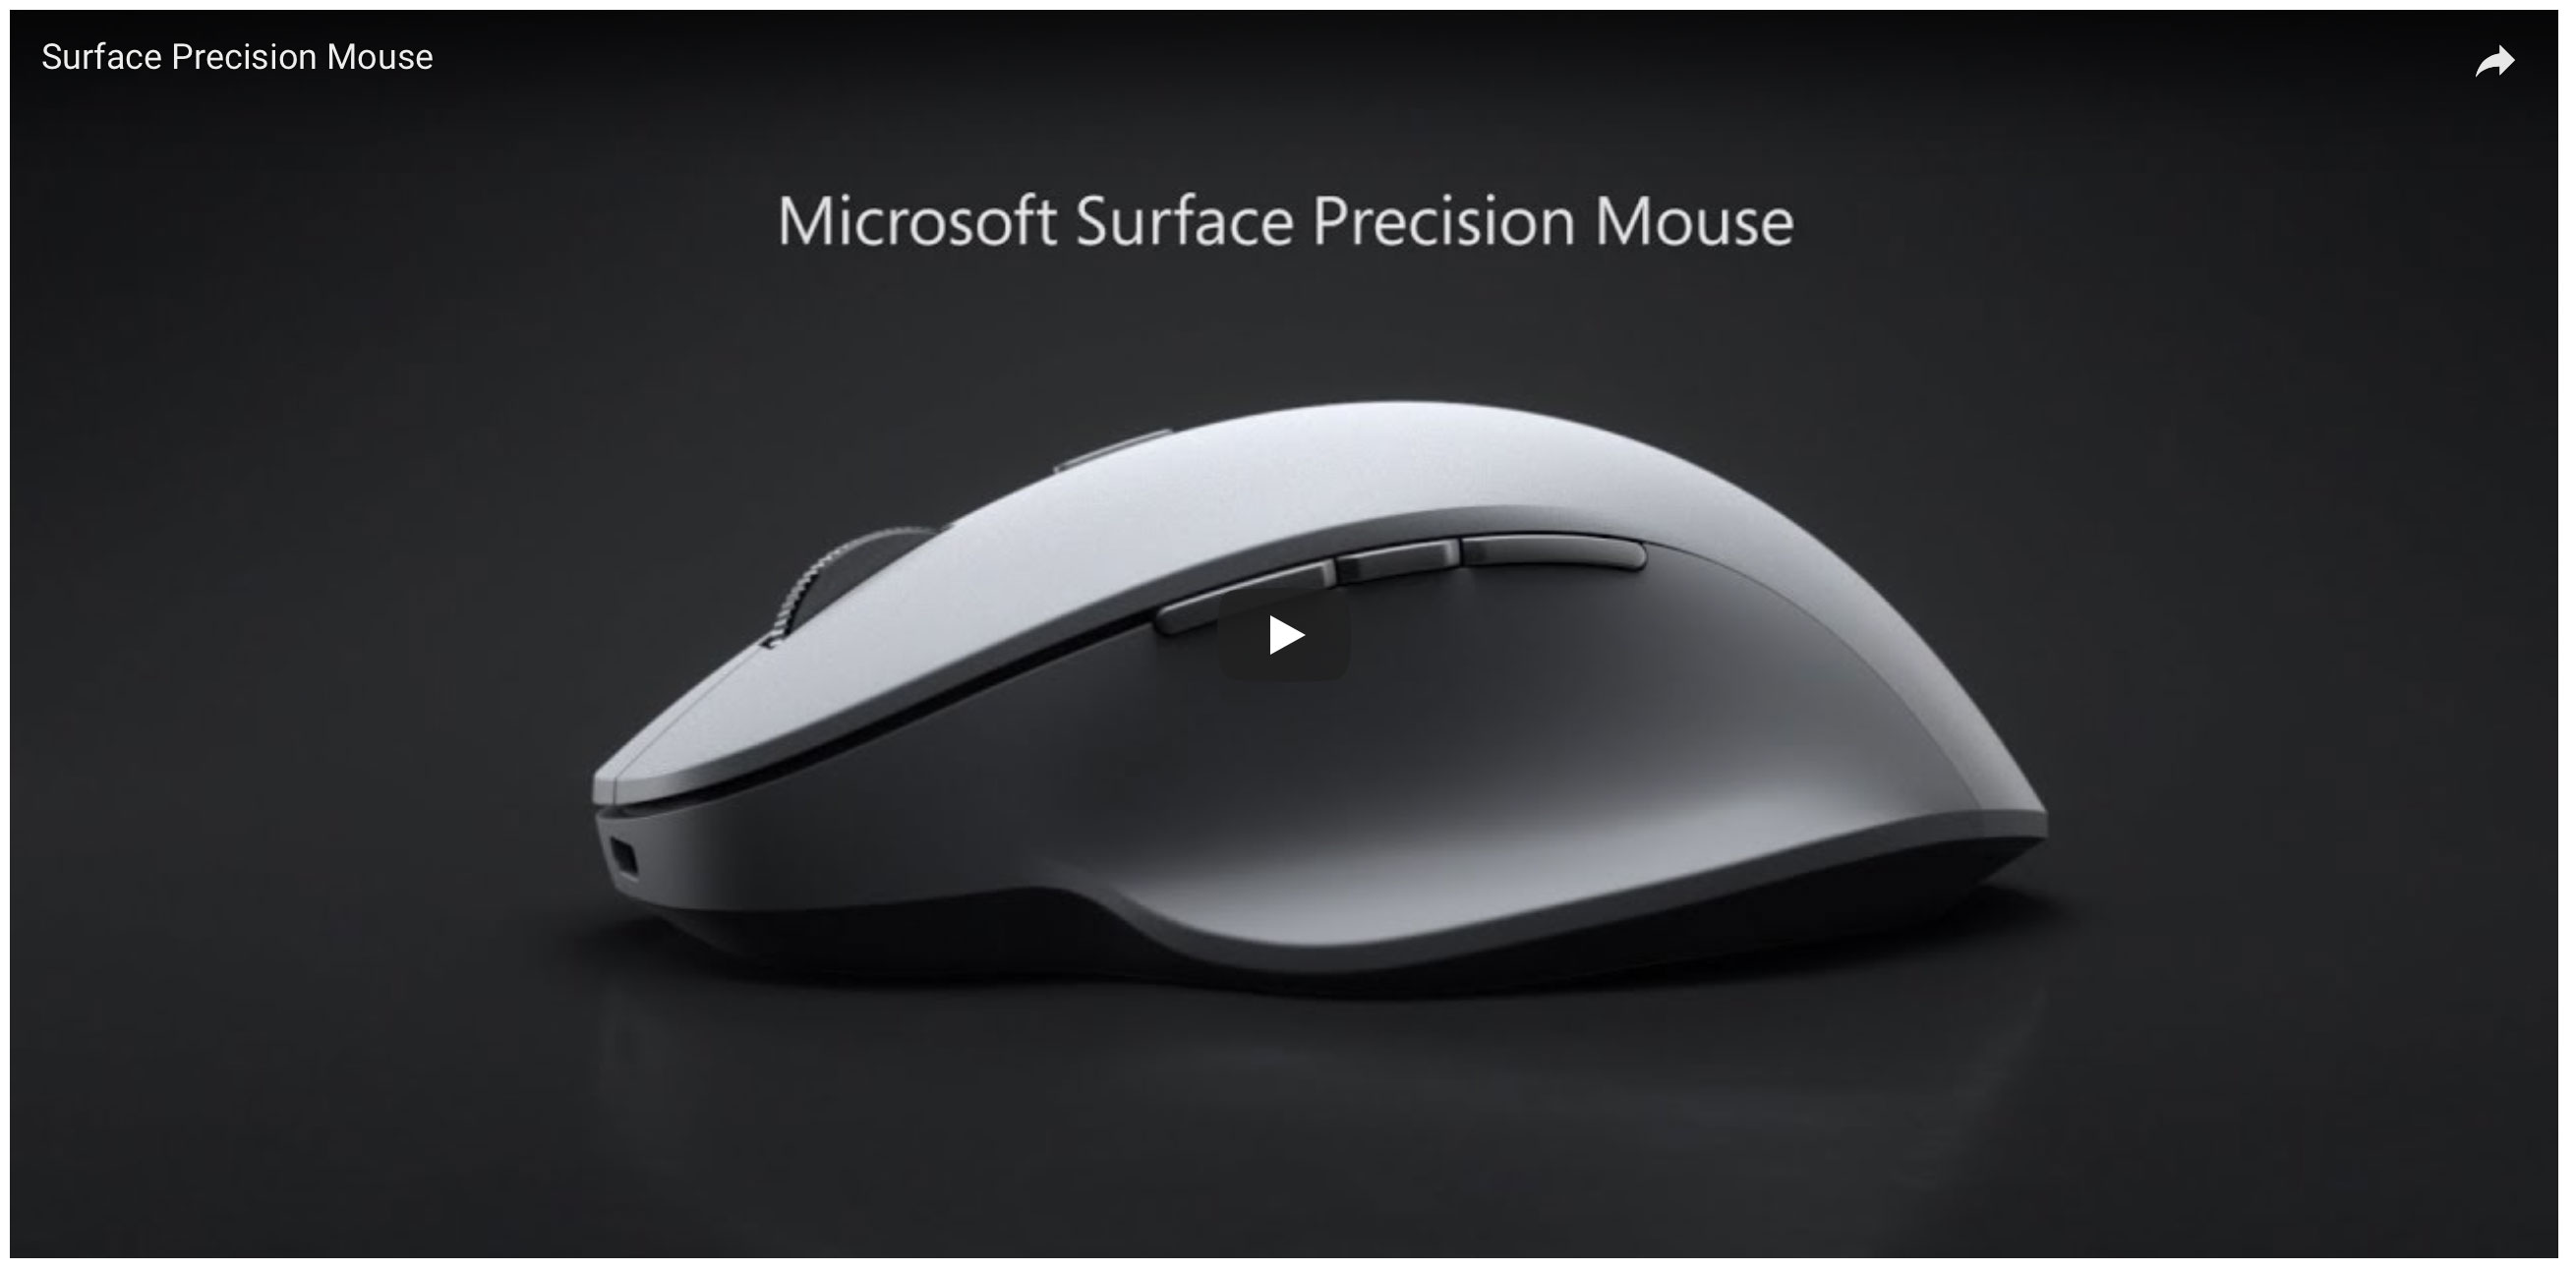 Buy Surface Precision Mouse - Microsoft Store